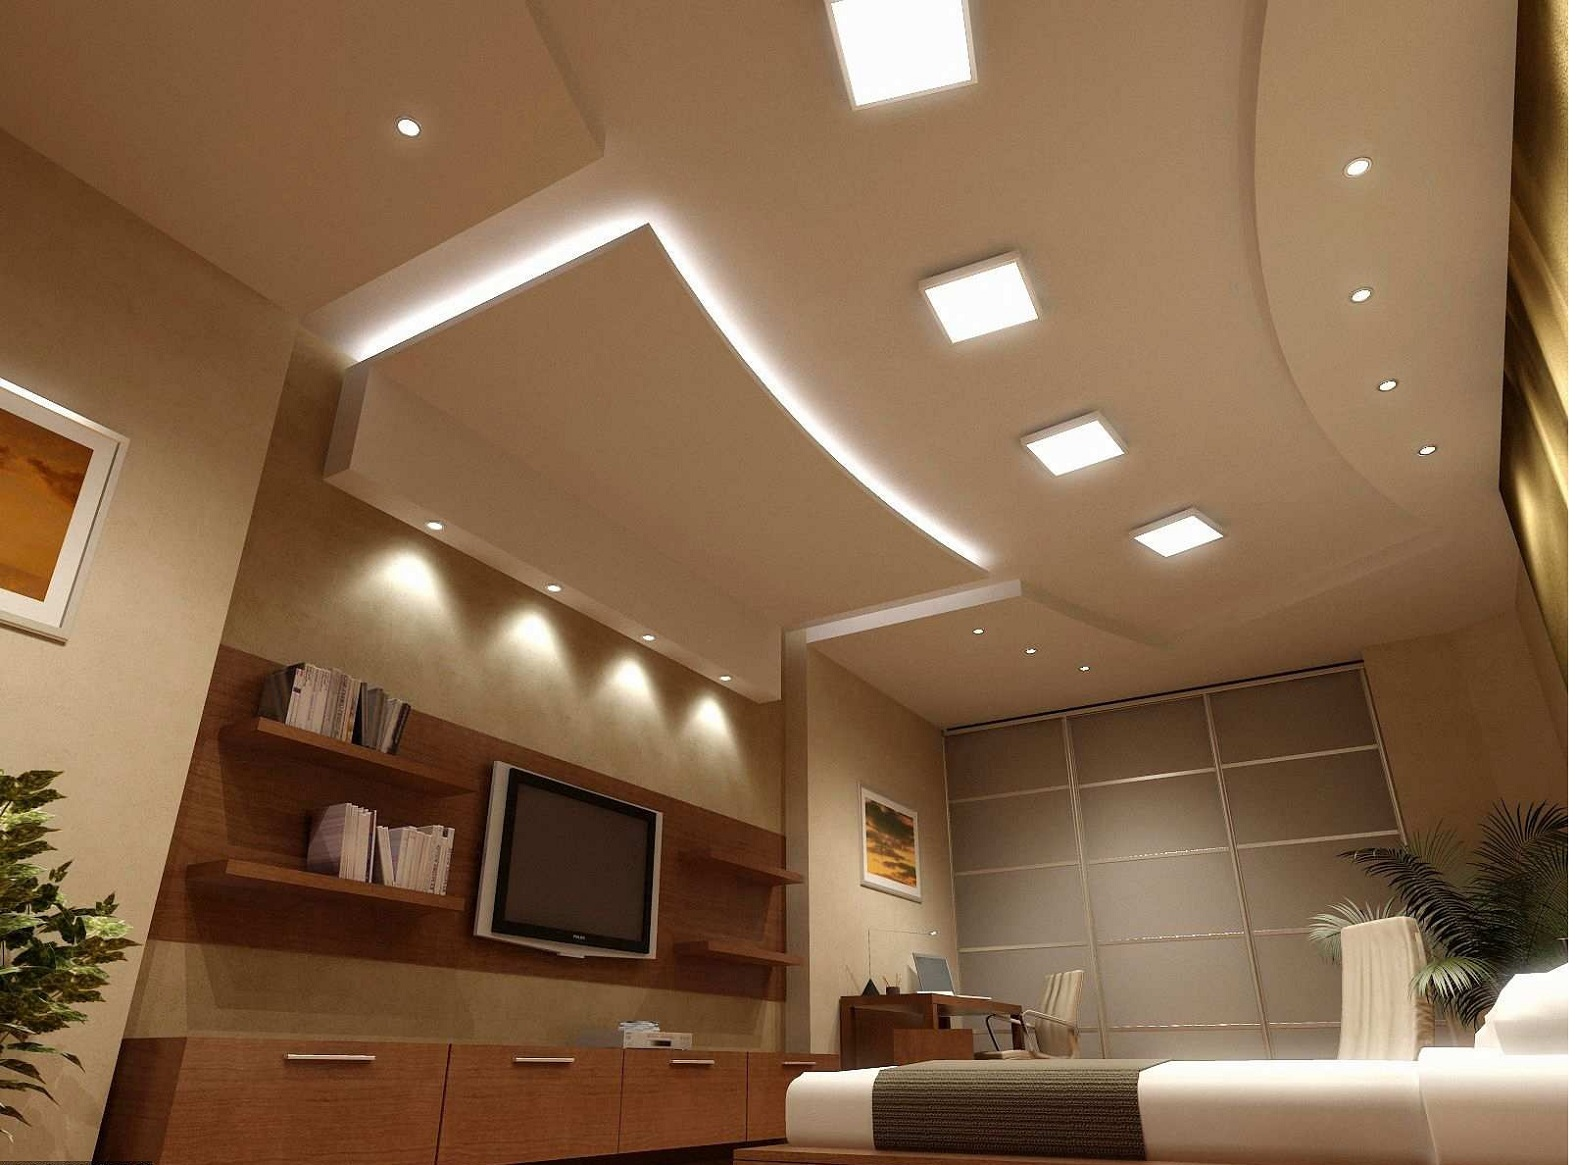 Home design pleasing white recessed lighting with curved dropped home design pleasing white recessed lighting with curved dropped ceiling style plus wooden bedroom wall mozeypictures Images